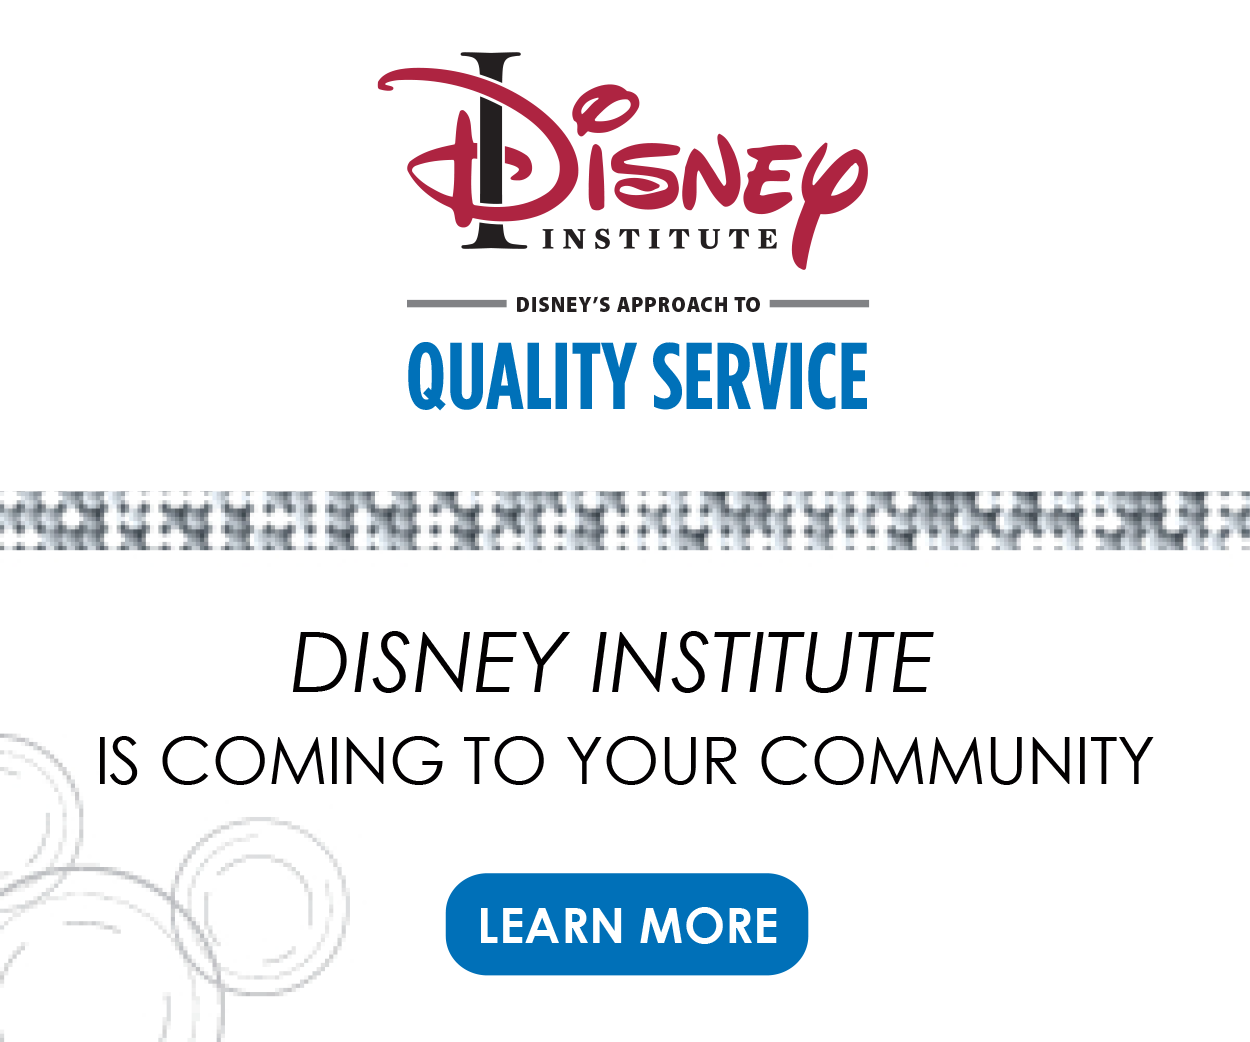 Disney Institute is coming to your community! Get registered for Disney's Approach to Quality Service today!